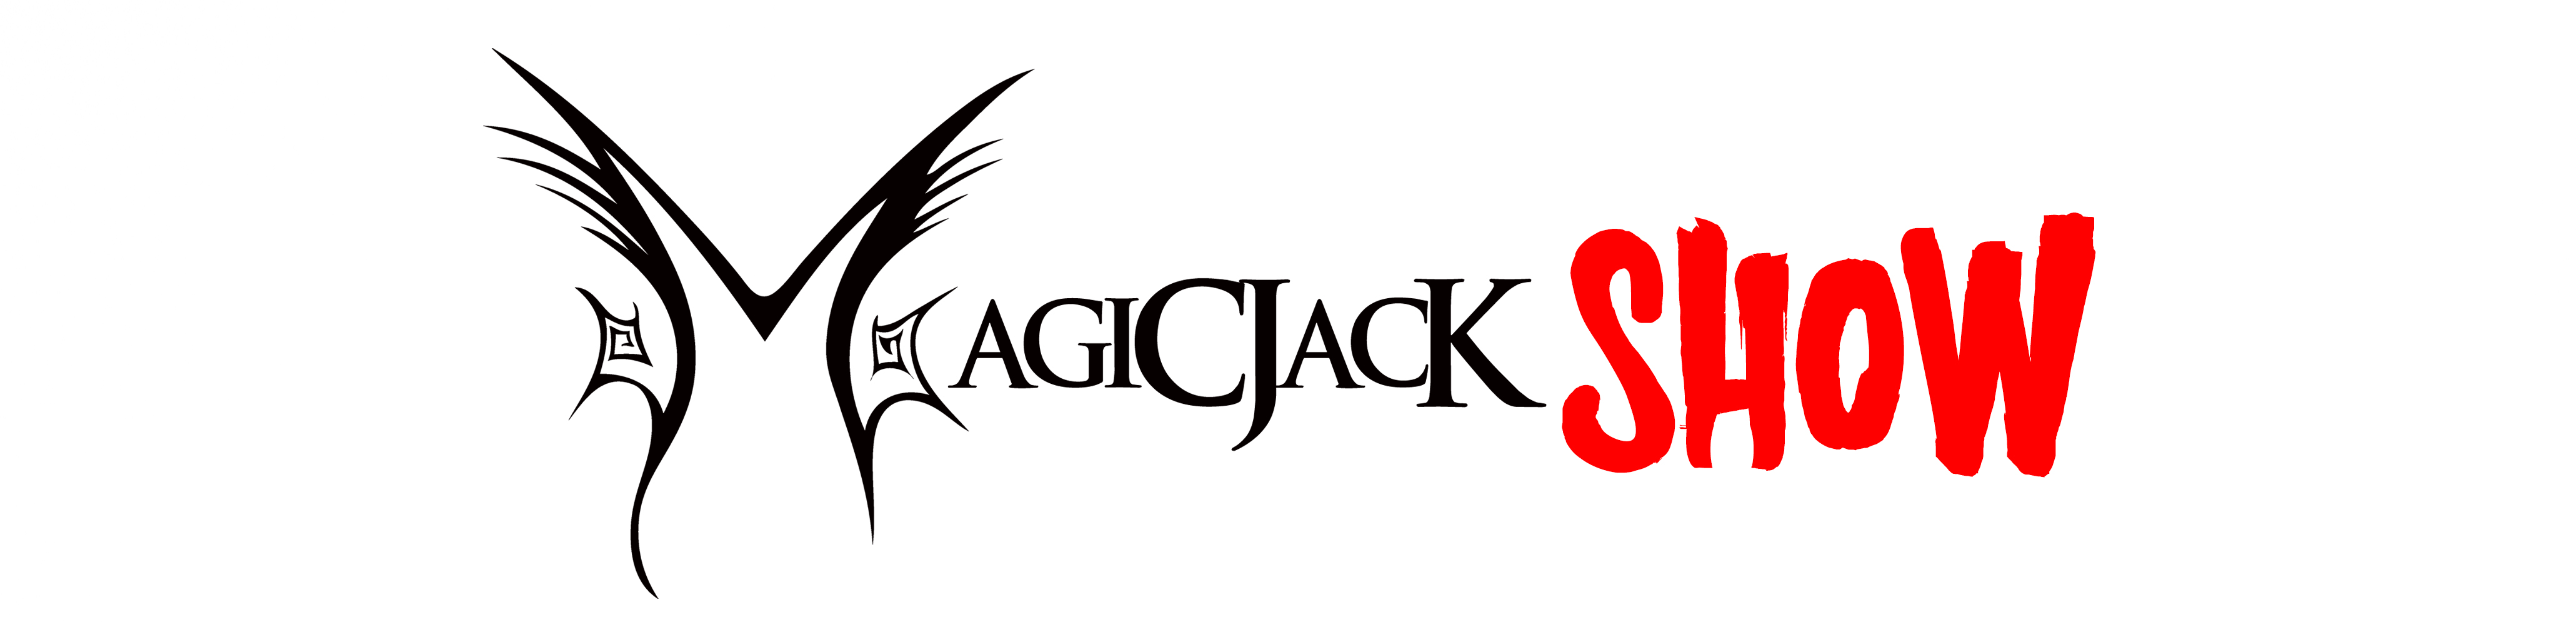 MagicJack Production